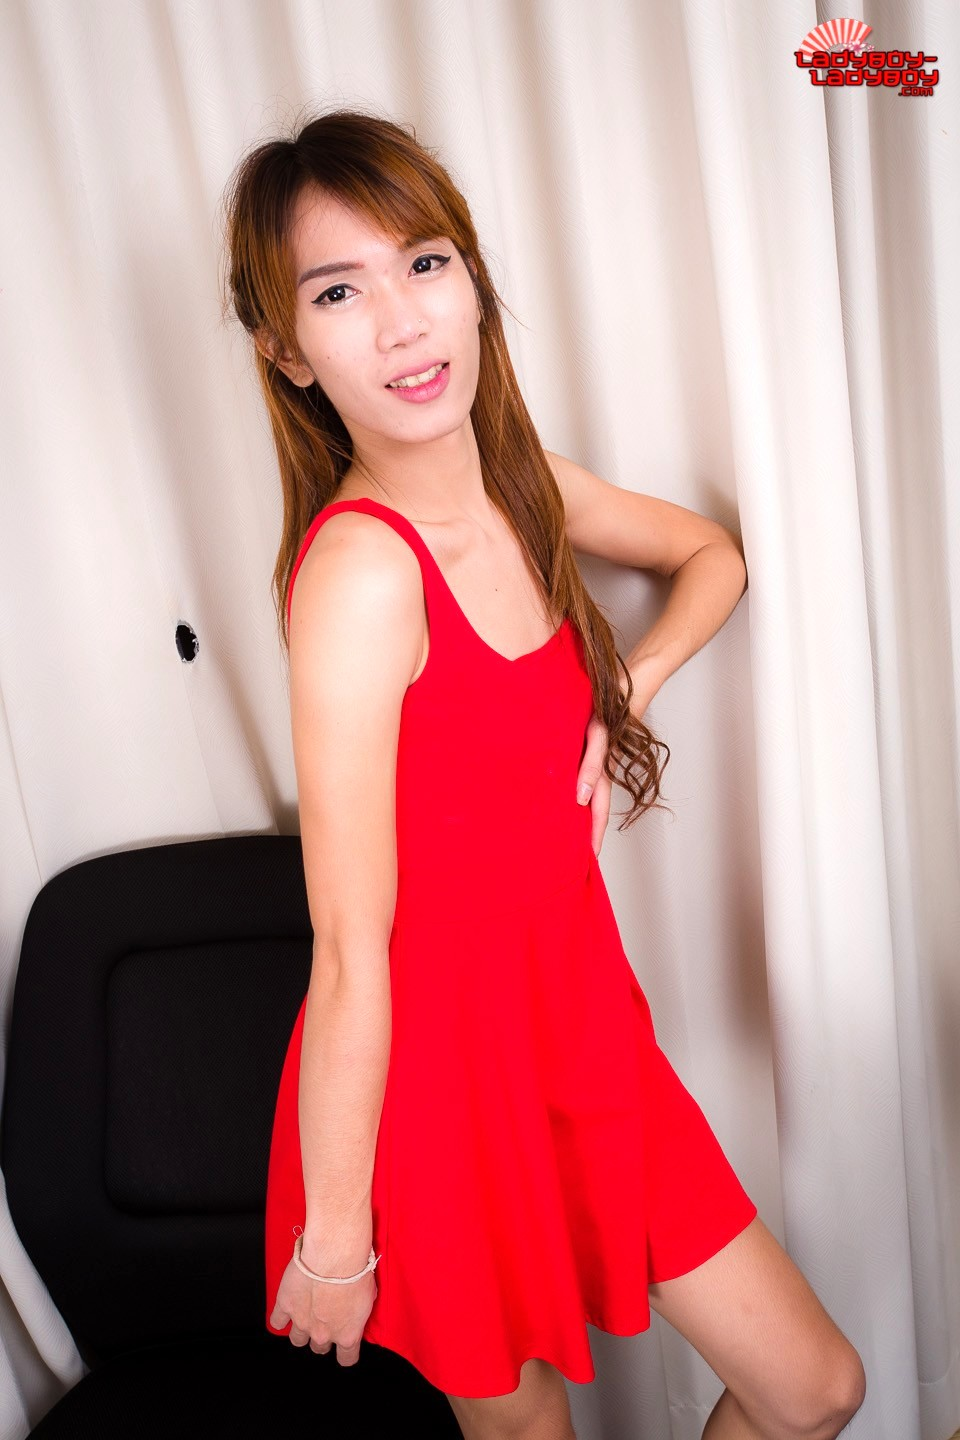 Jenny Is A Super Perfect All Natural TGirl From Bangkok. She